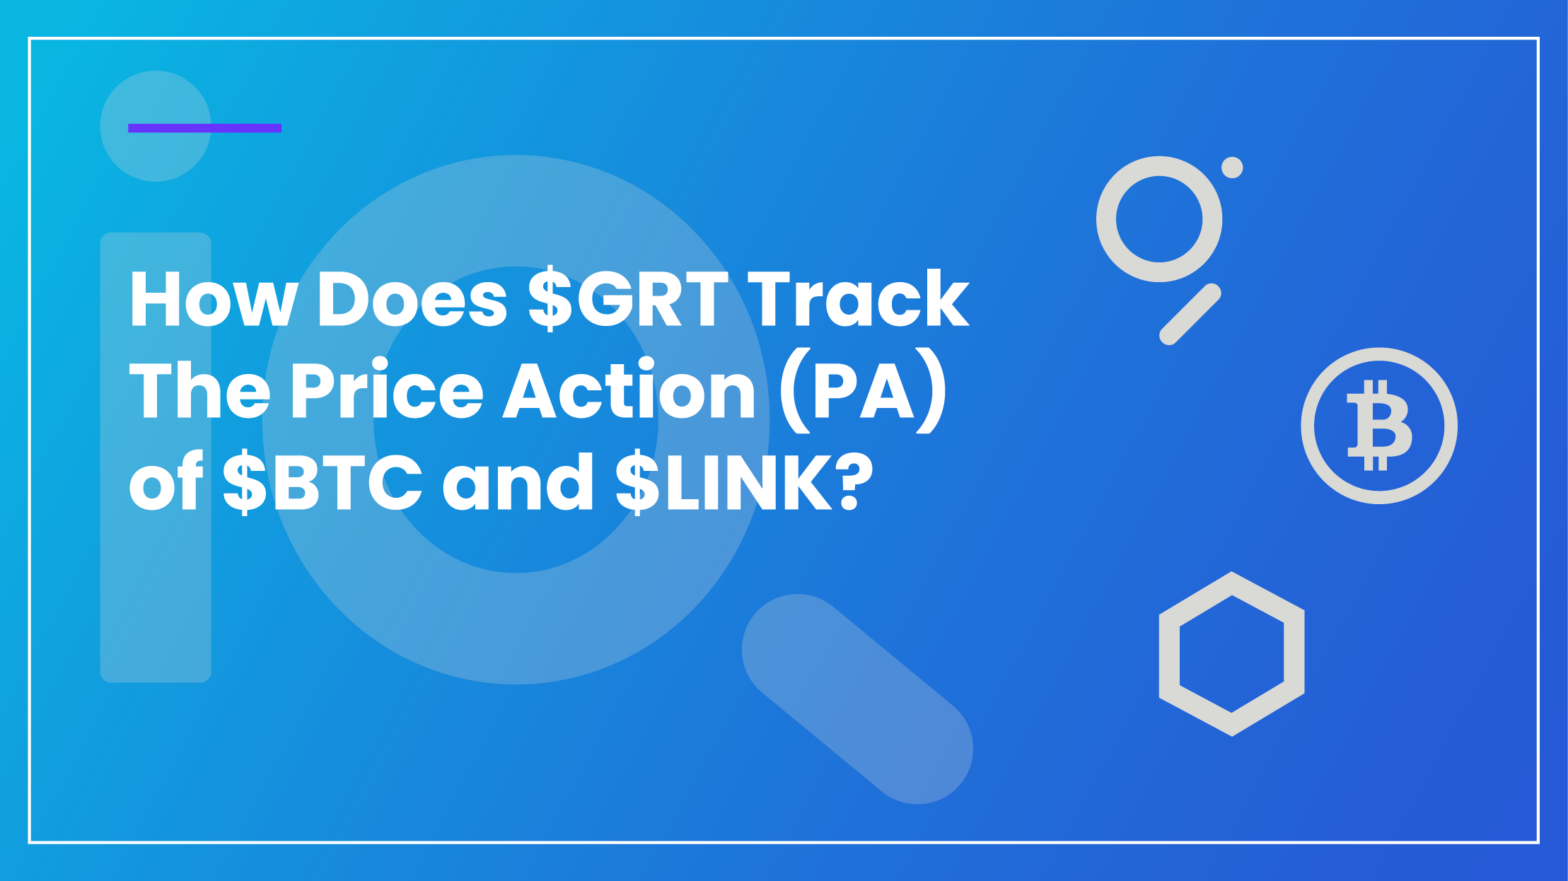 GRT and BTC and LINK